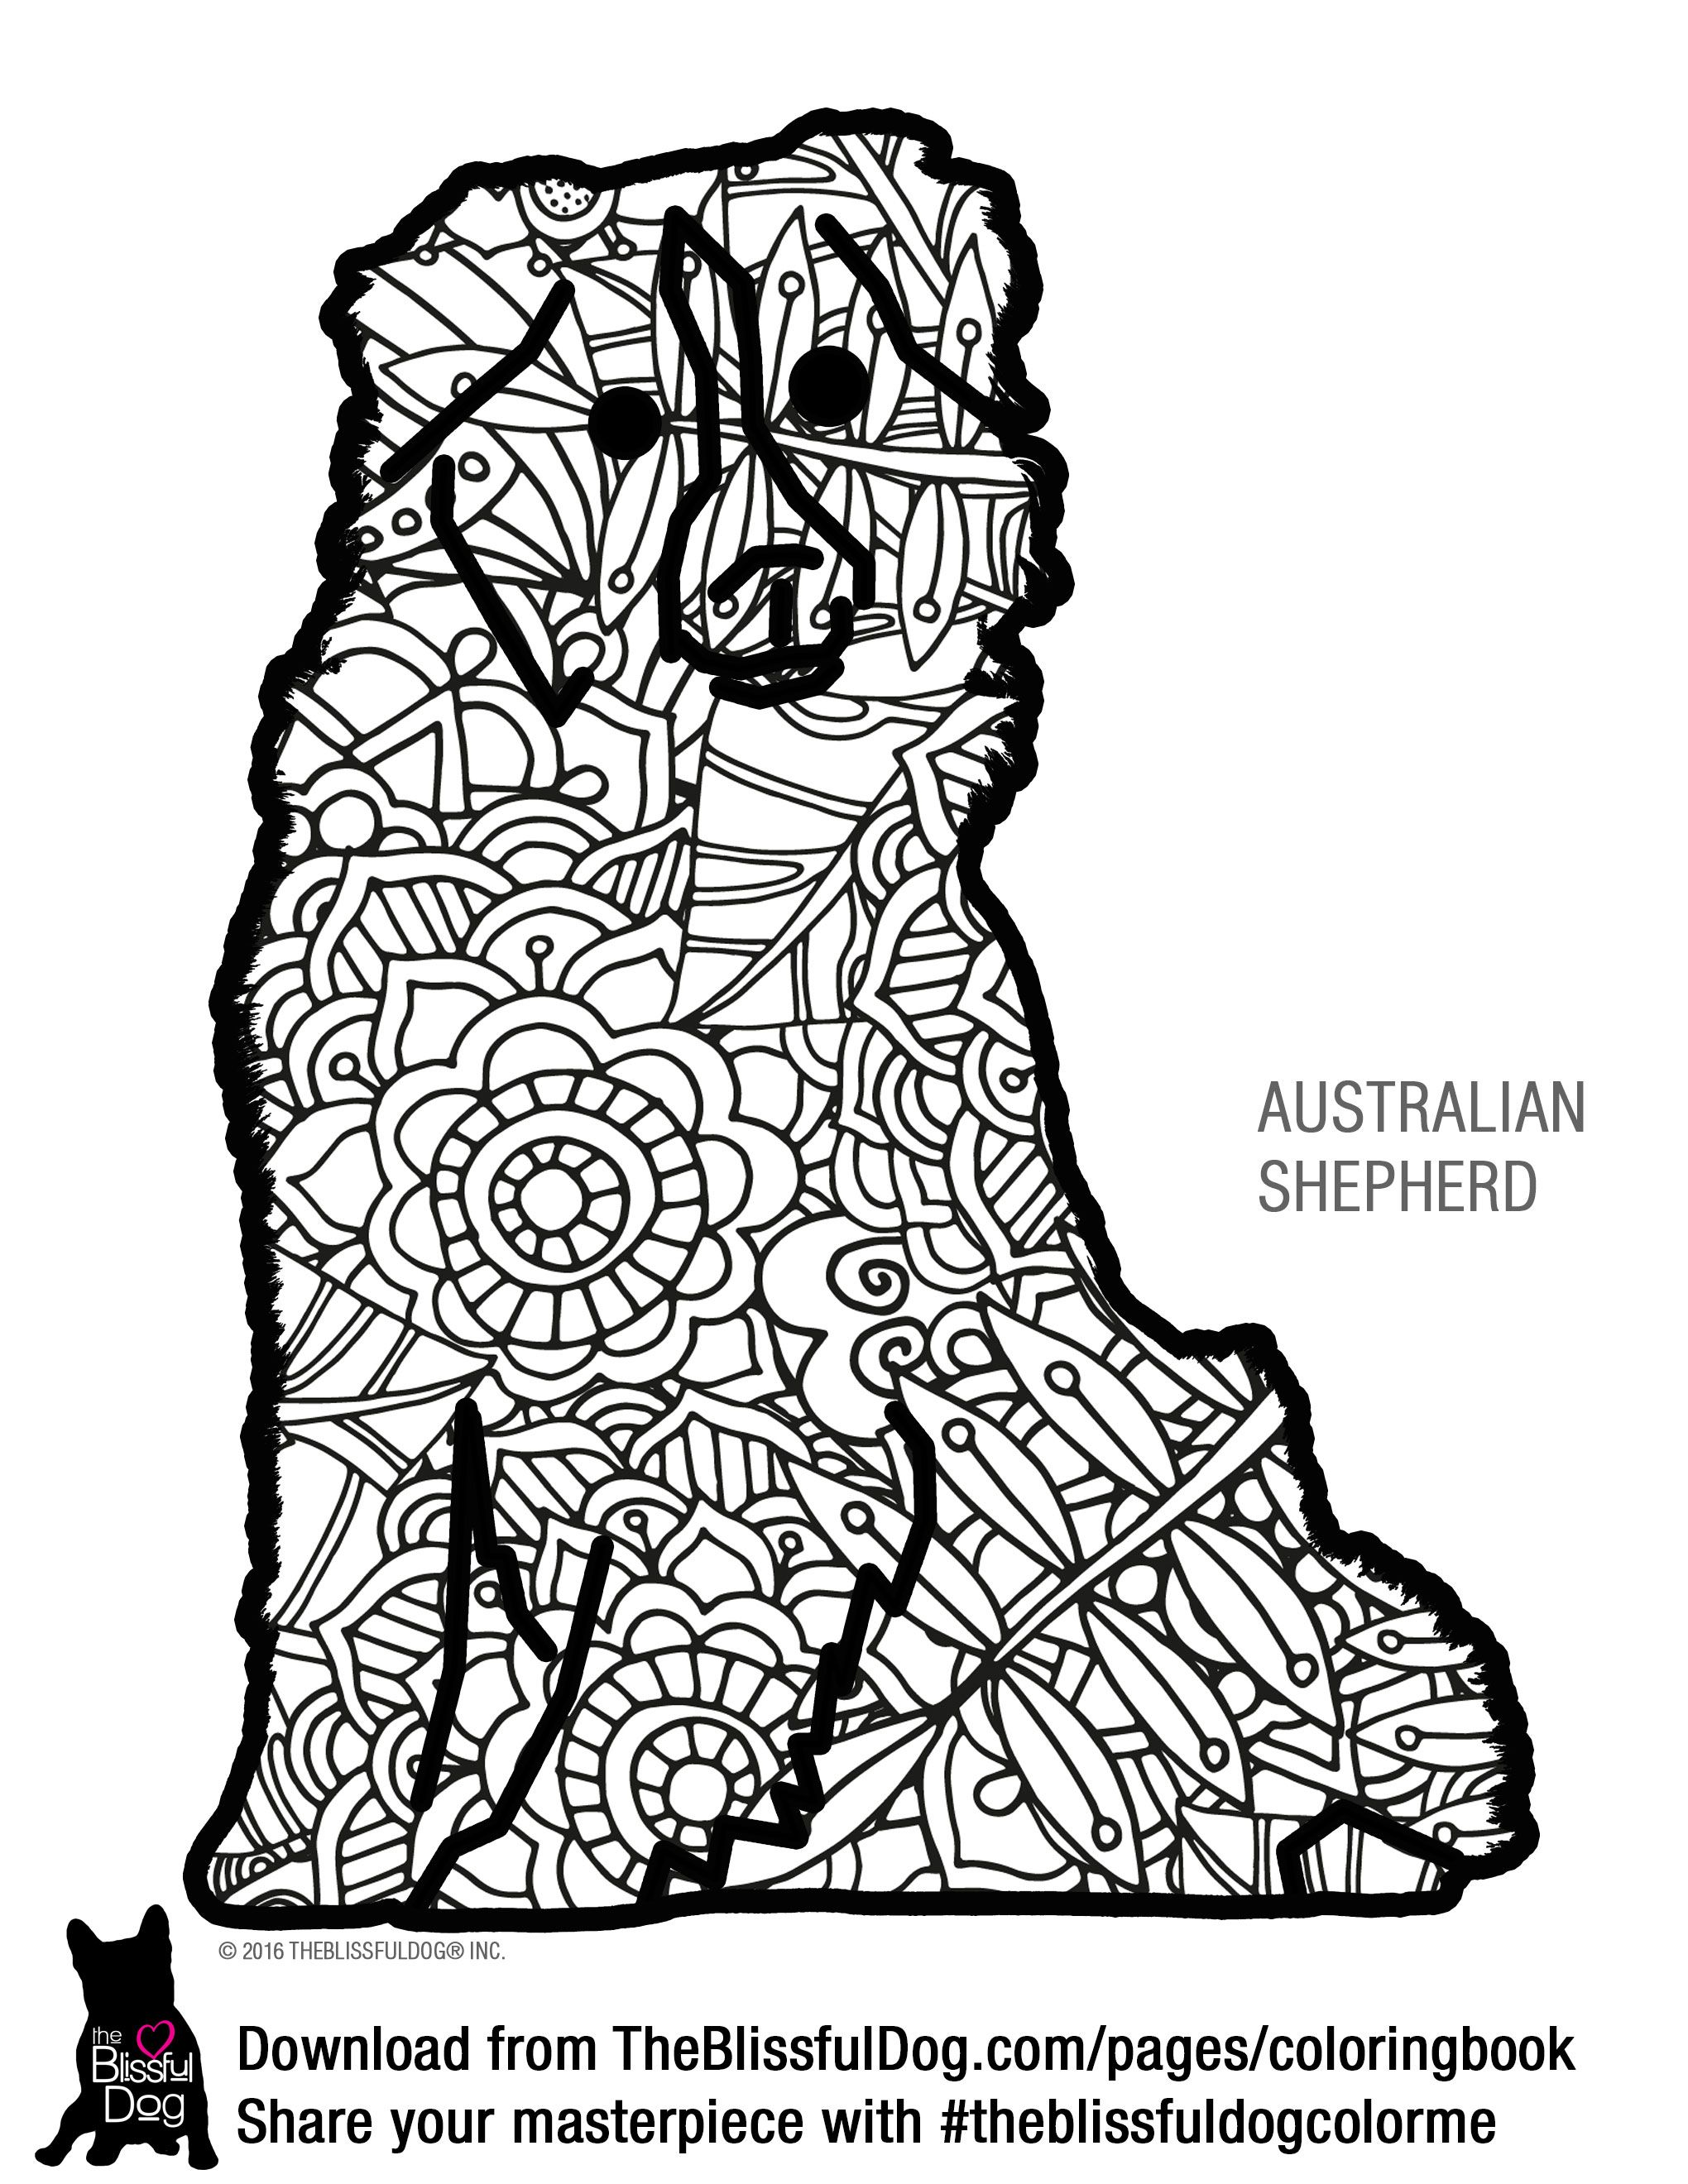 Coloring Book | Australian shepherd, Coloring books and Dog breeds